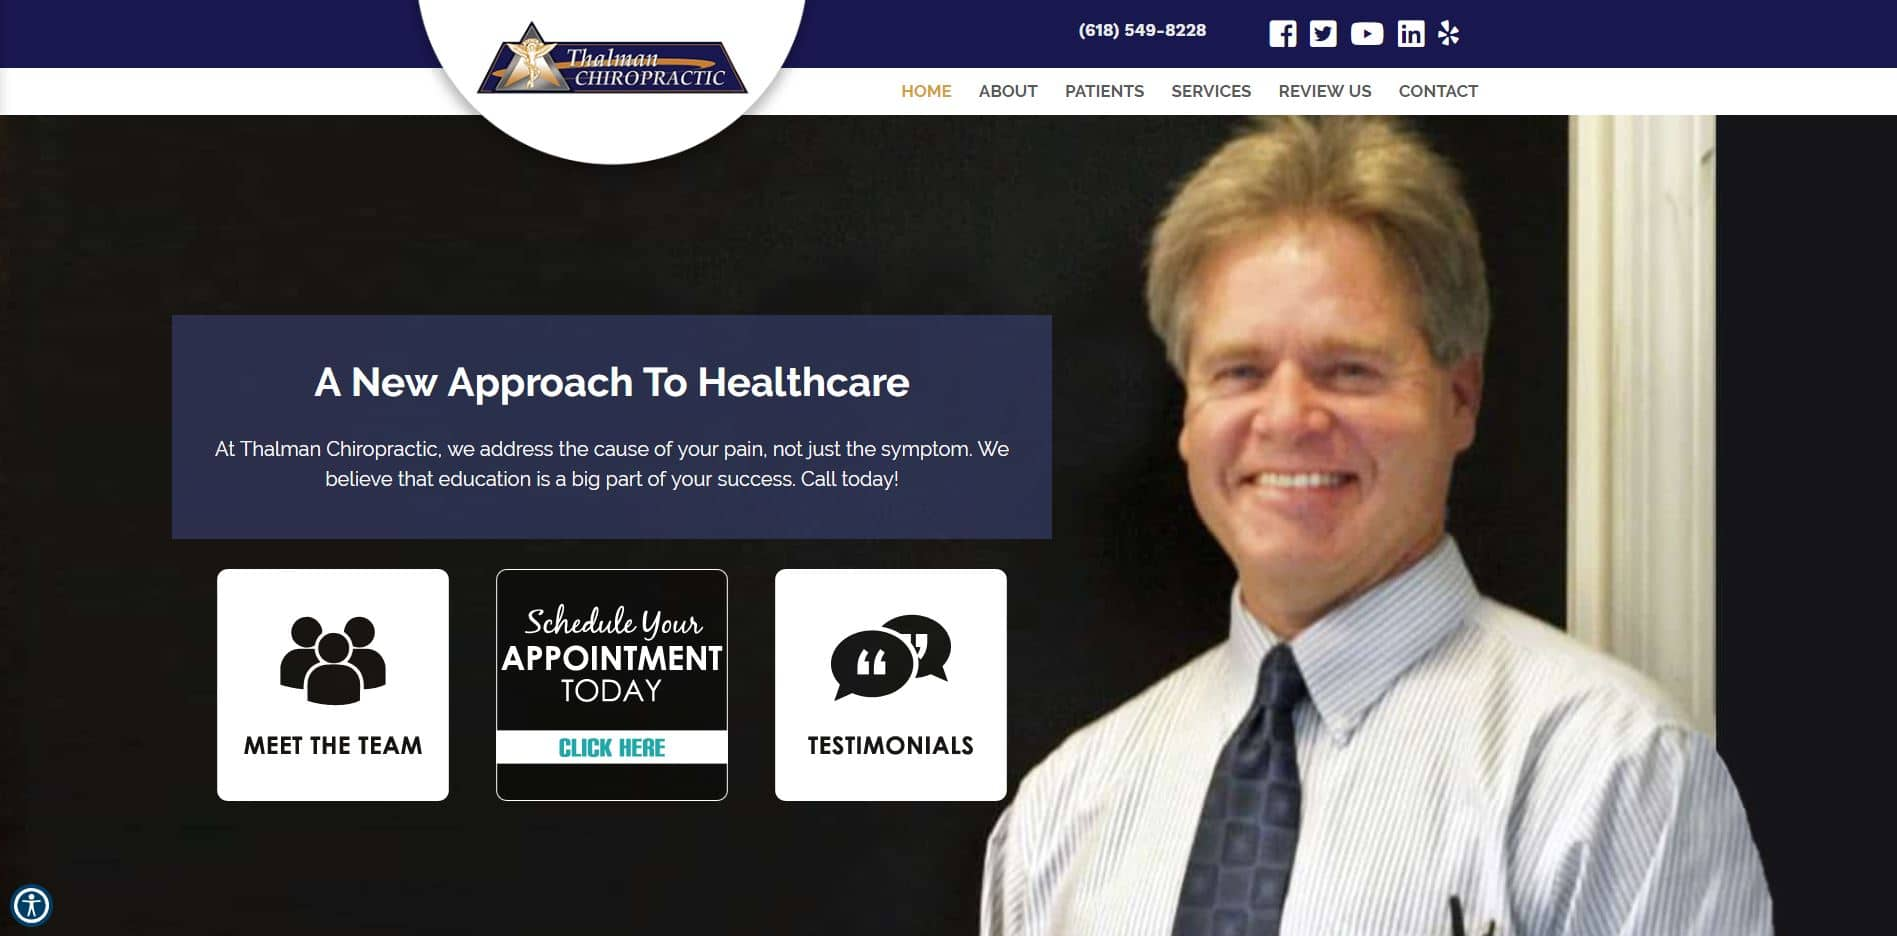 Chiropractor in Carbondale